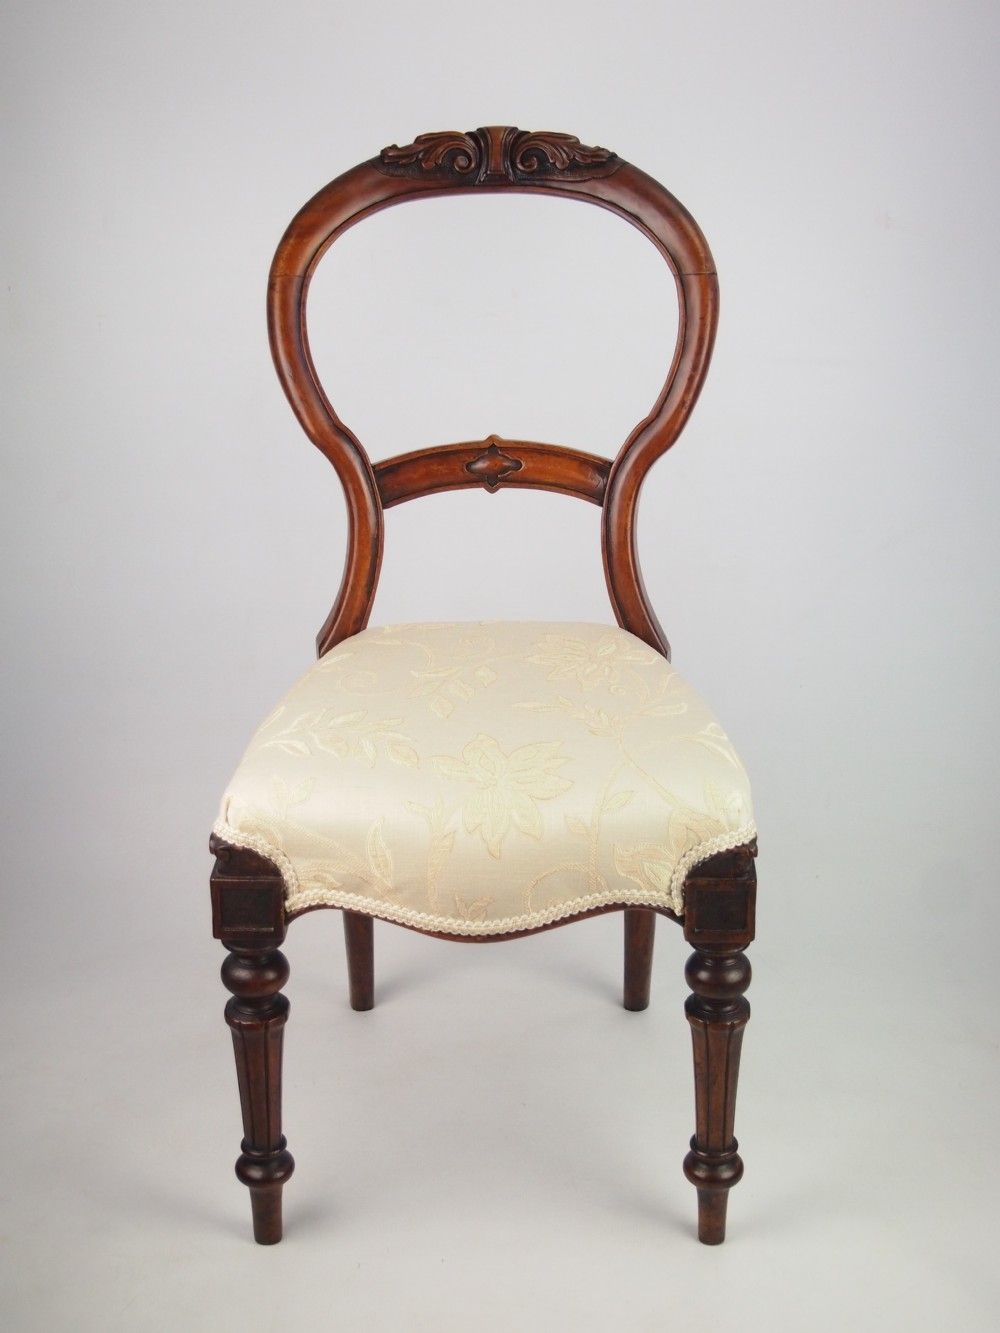 Antique victorian chairs - Antique Victorian Balloon Chair Recherche Google